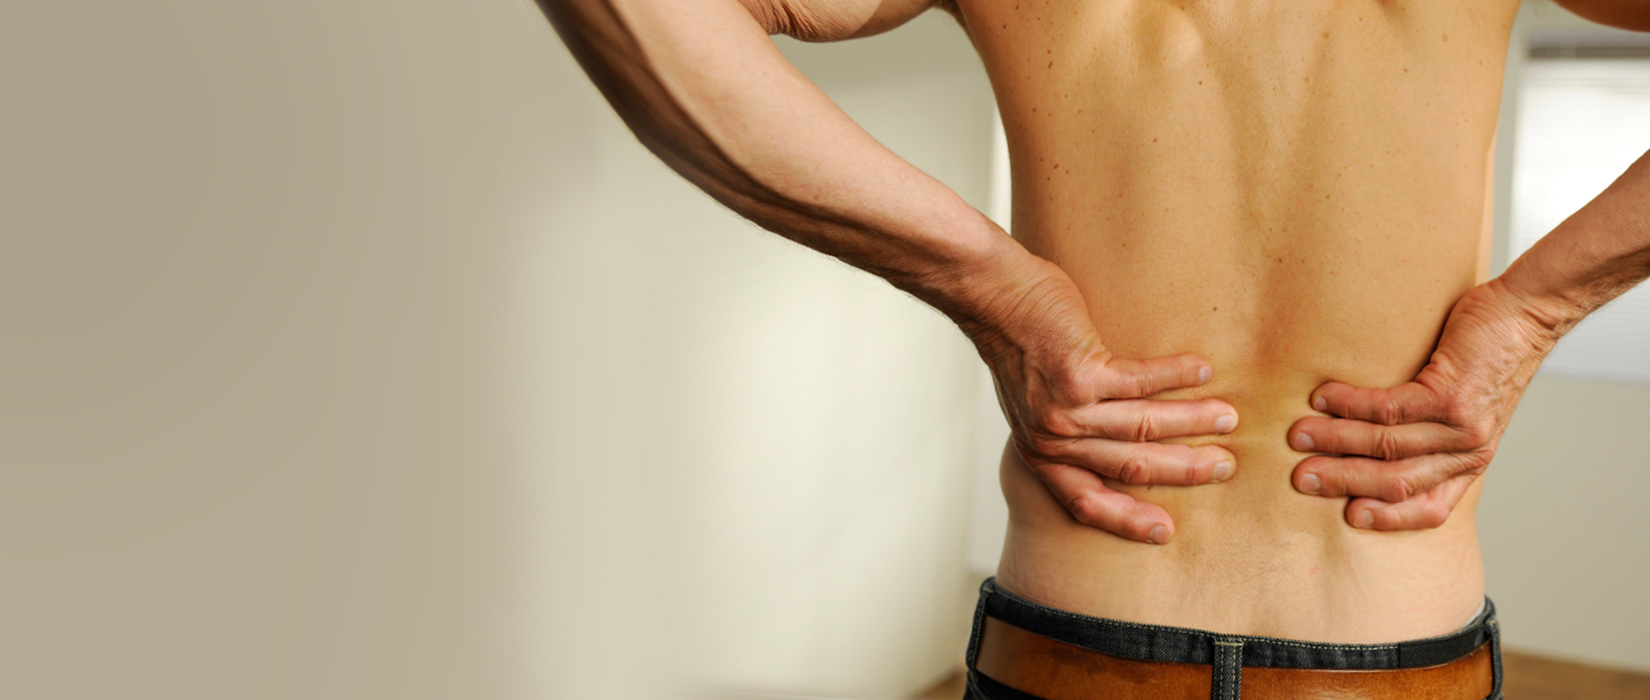 back pain chiropractor fargo north dakota